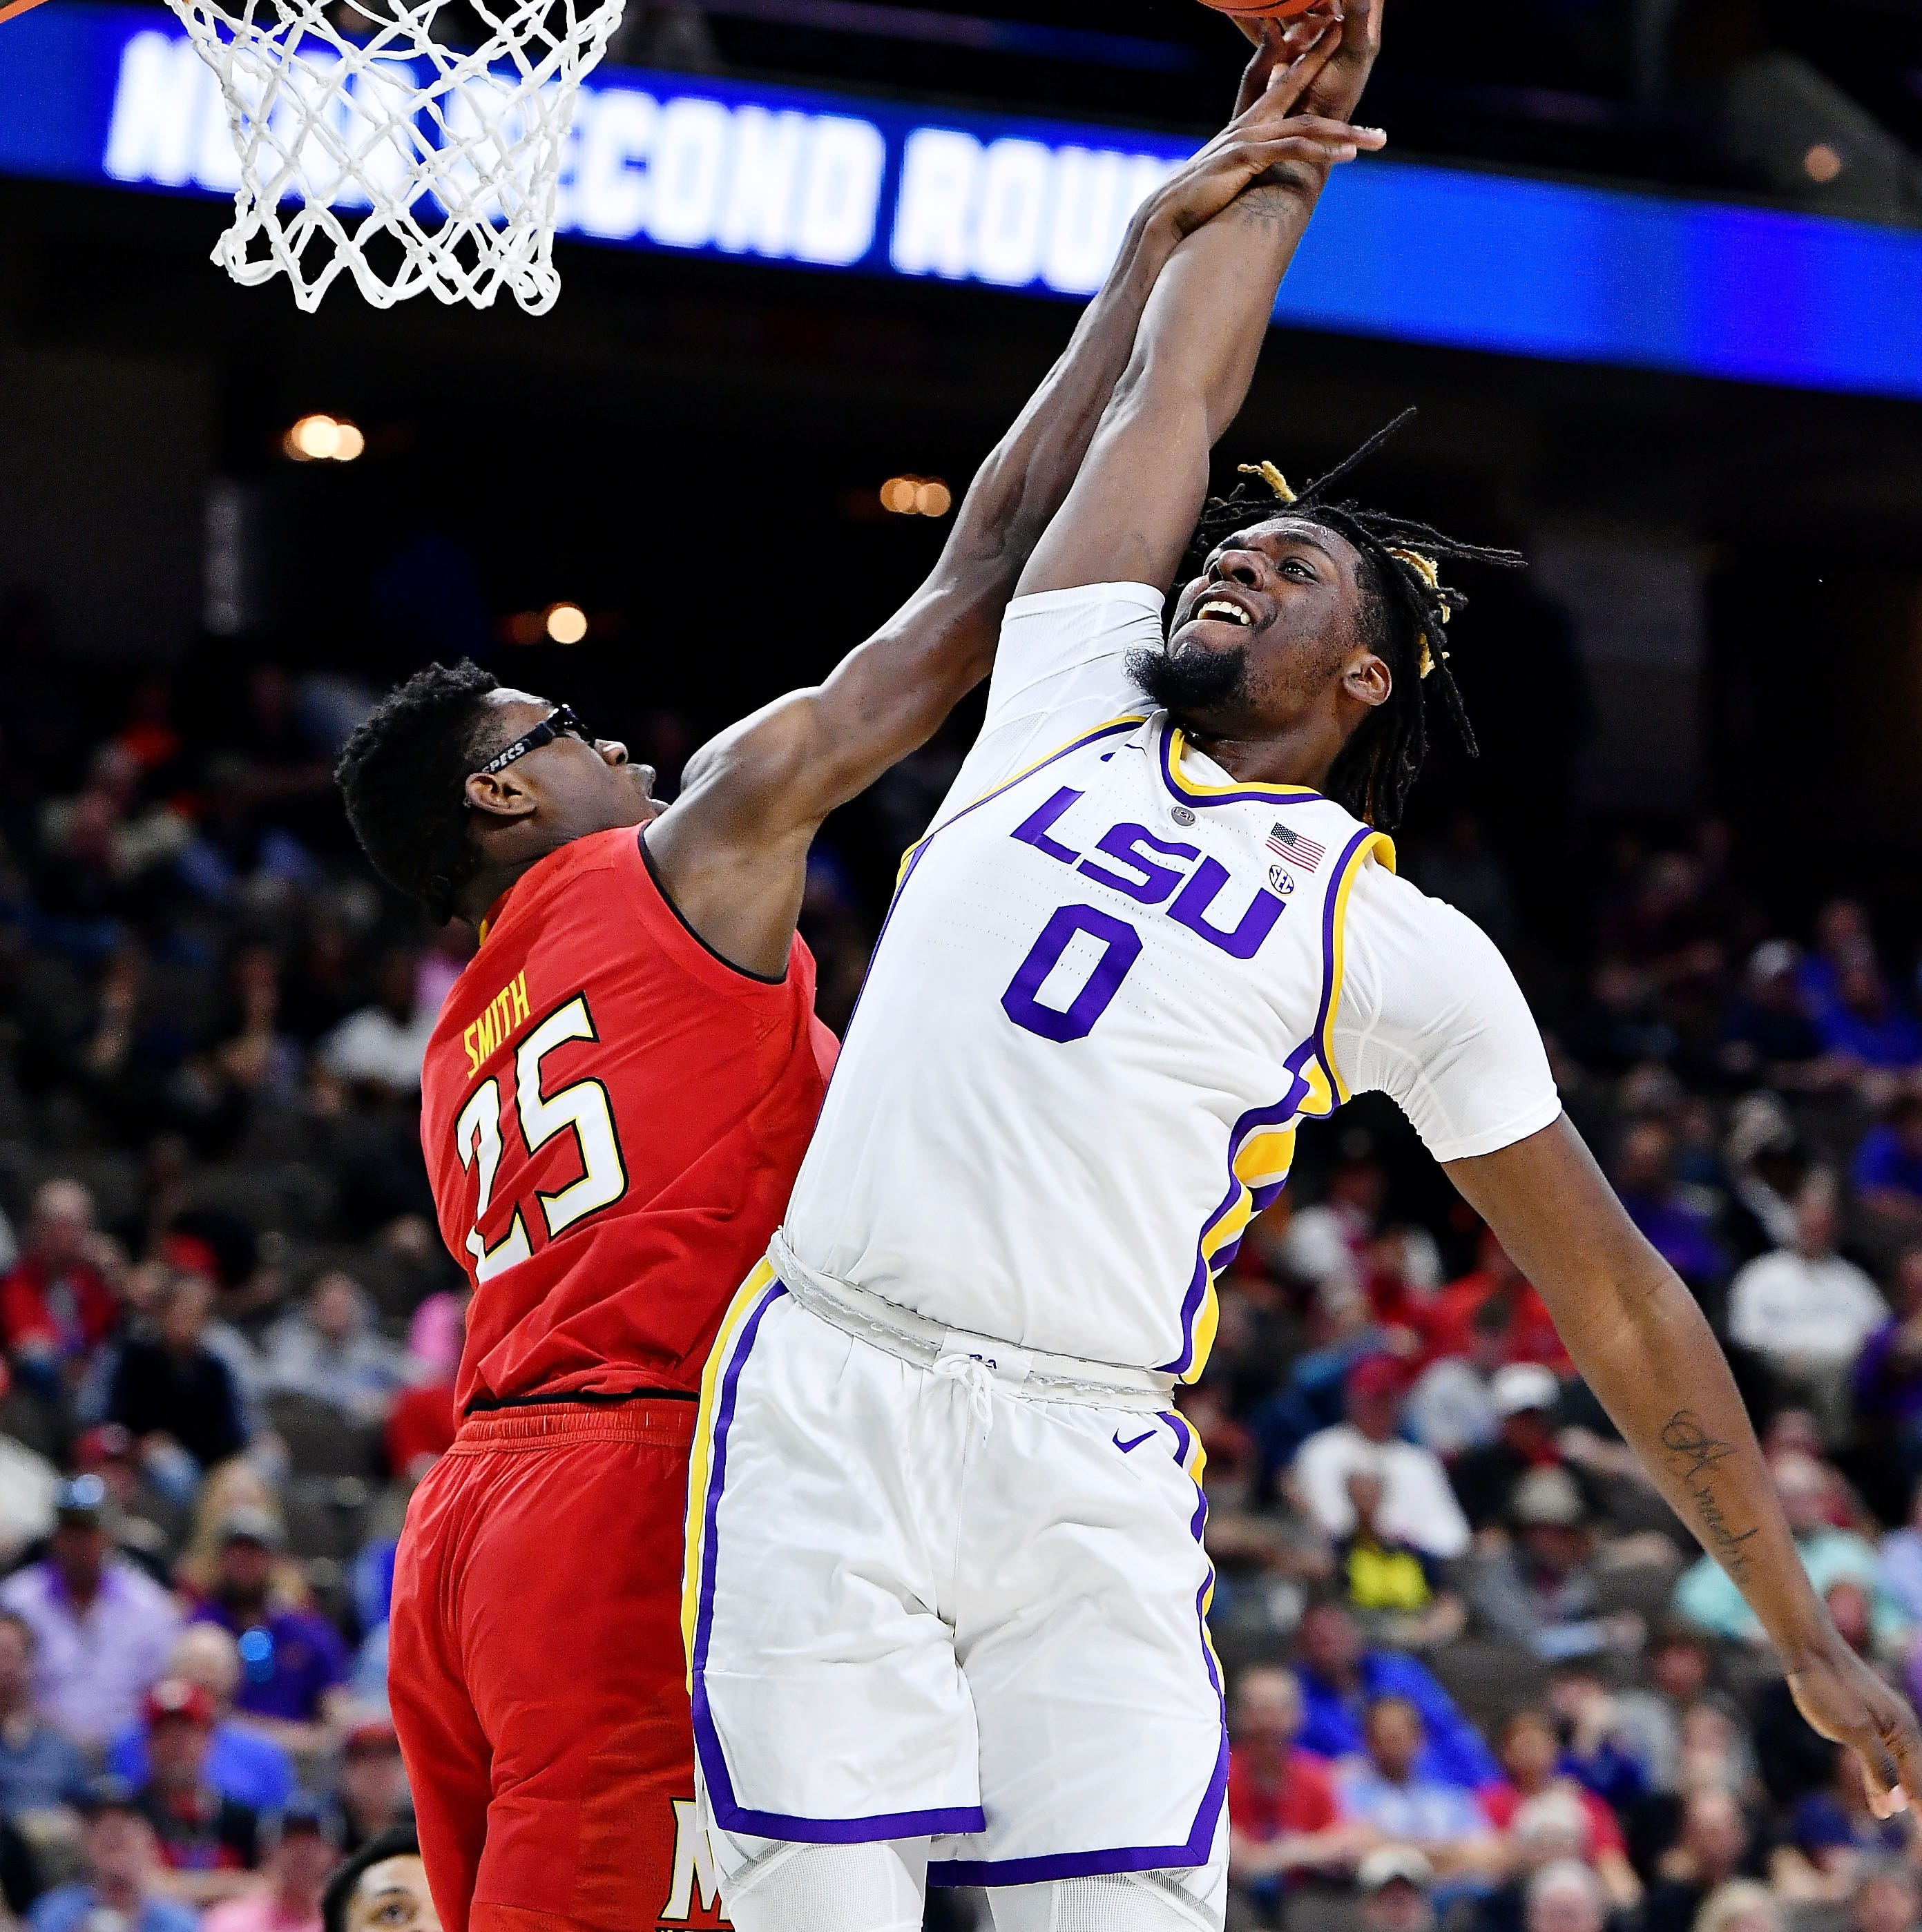 NCAA Tournament 2019:  3 facts on LSU basketball before facing MSU in Sweet 16